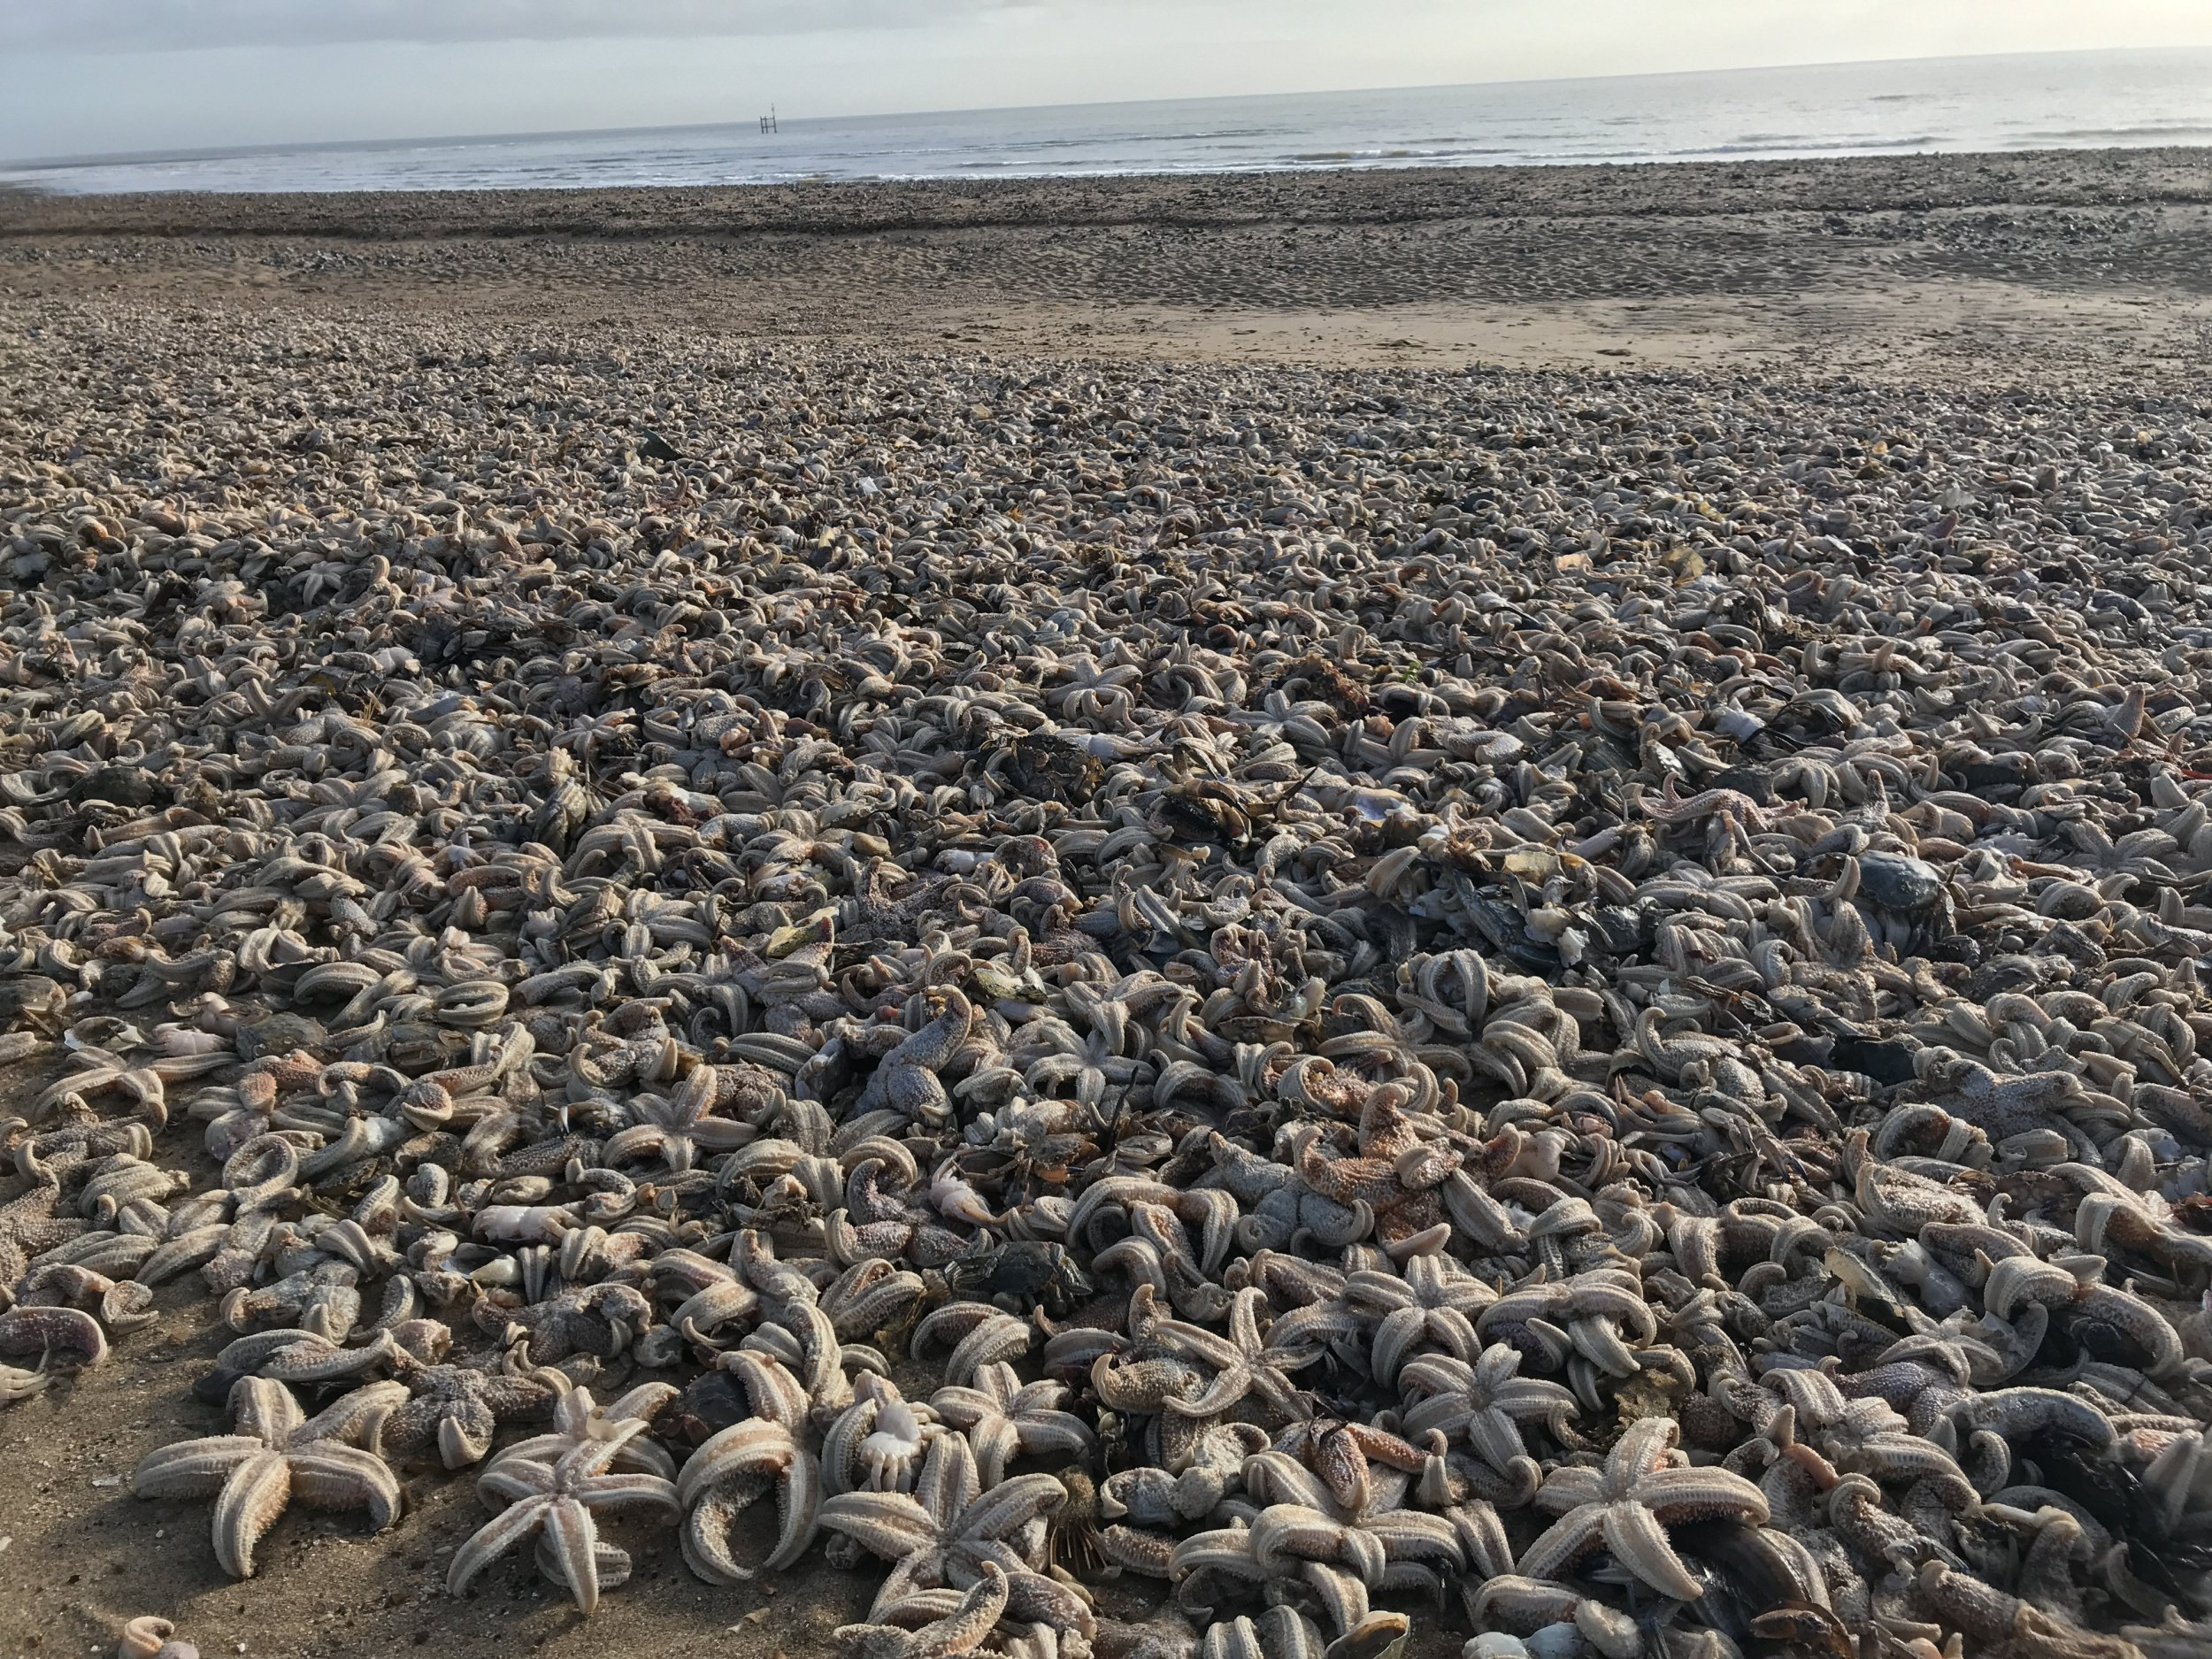 "Staggering photos show tens of thousands of dead starfish washed up on a British beach in the wake of the beast from the east weather snap. See National story NNBEACH; The spectacular scene in Ramsgate, Kent, was described as ""like the armageddon"" by wildlife enthusiast Laura Maiklem, 47, who photographed the phenomenon. She estimated ""hundreds of thousands"" of starfish and other sea life were washed ashore this weekend following the spell of subzero temperatures."